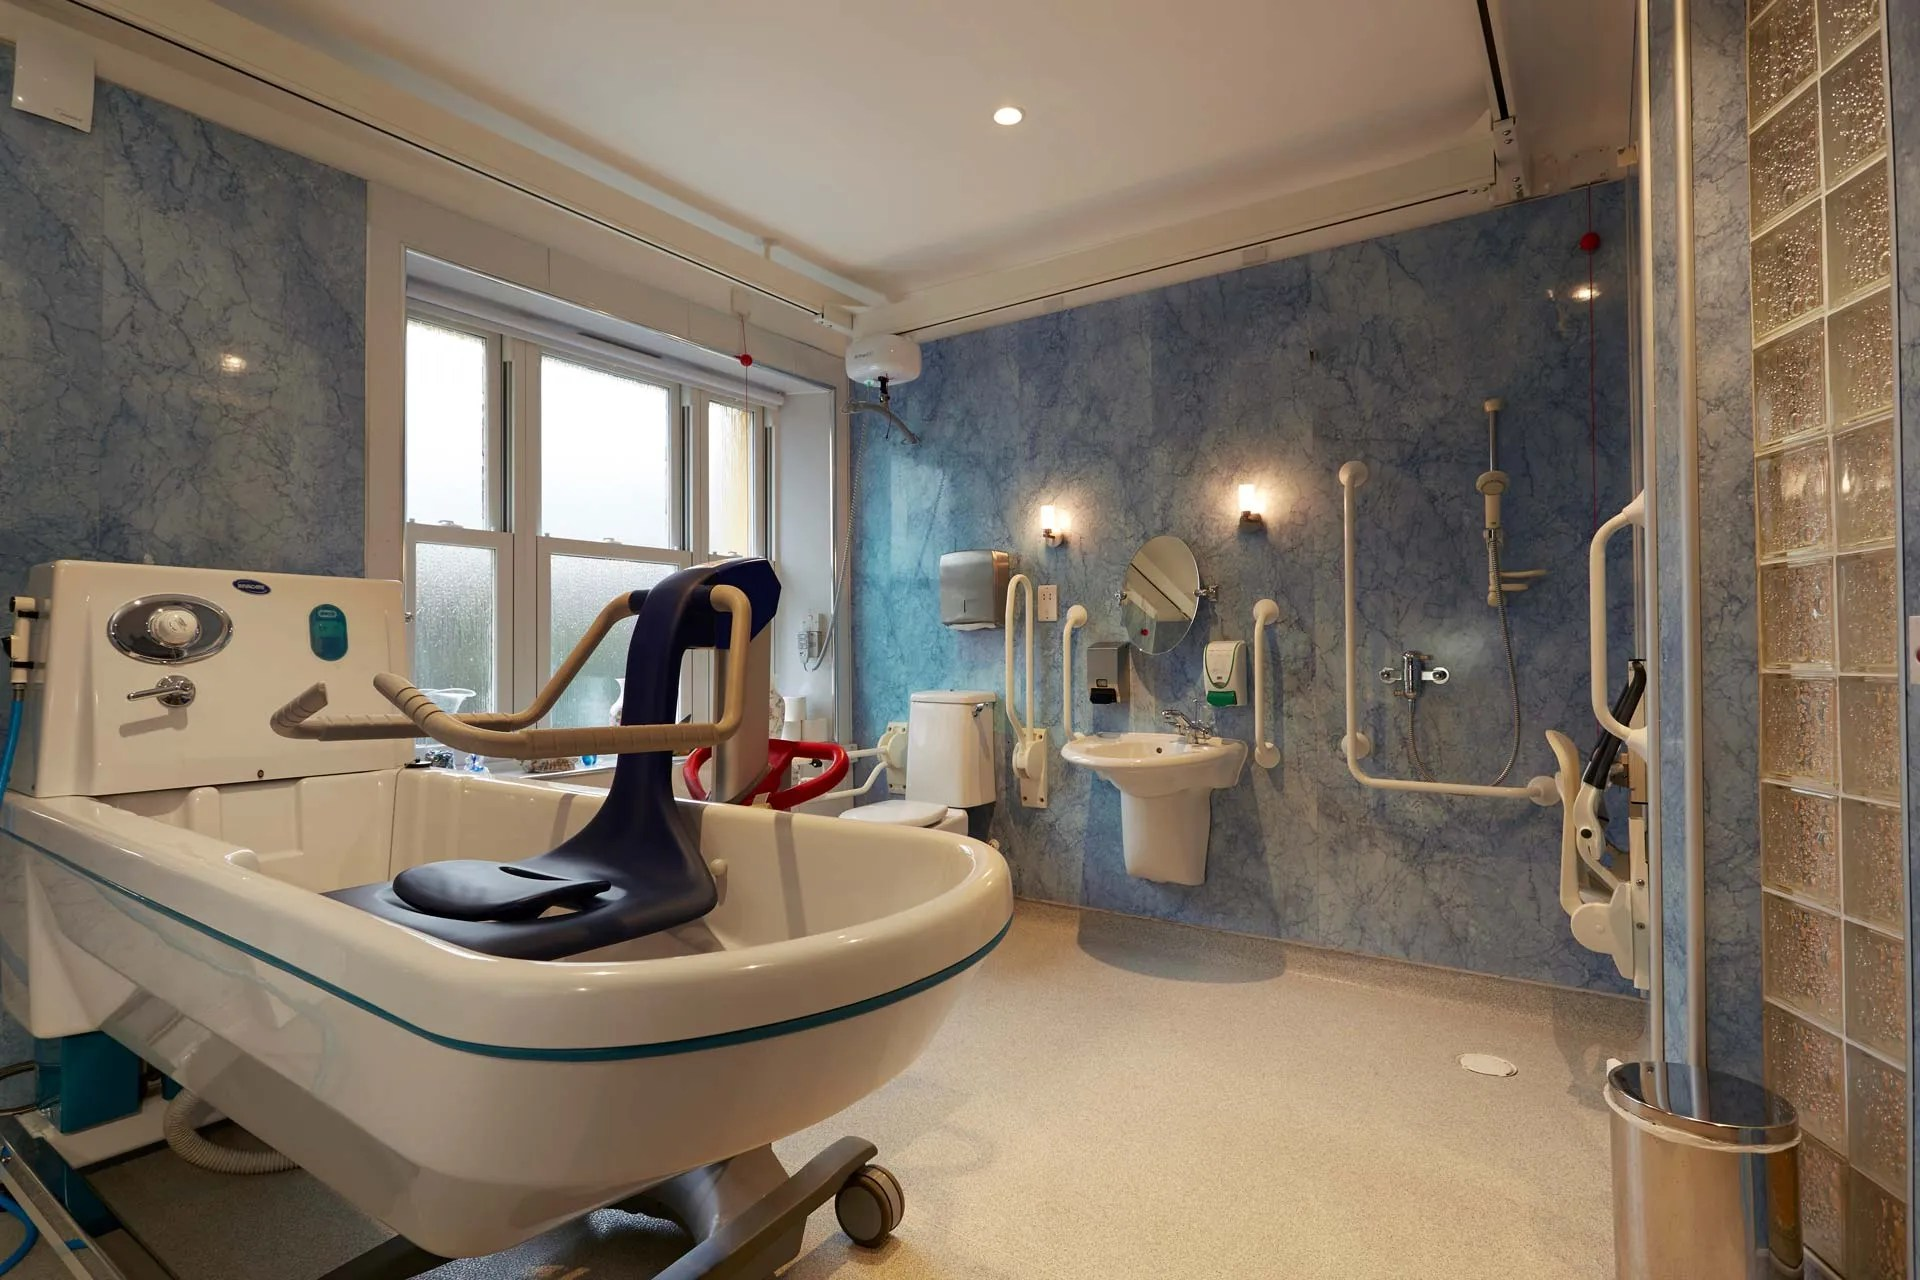 A fully kitted out bathroom for assisted bathing, with accessible bathtub and shower.